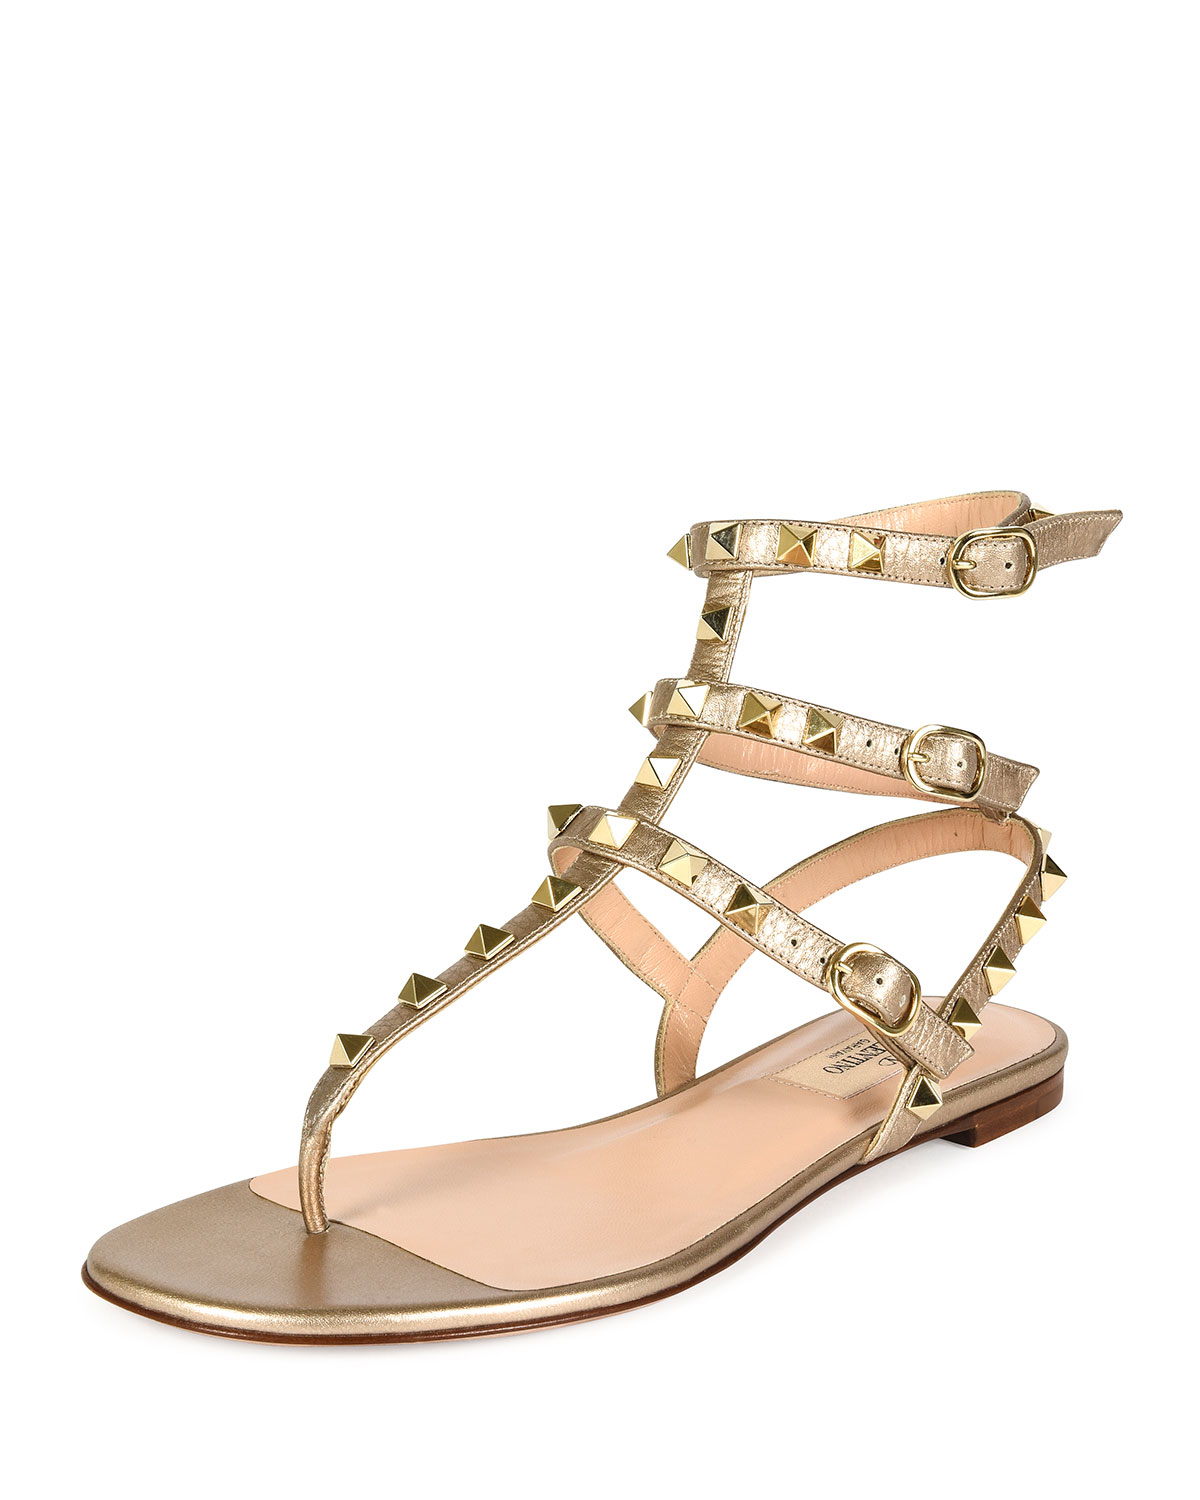 d75a9d4790d Gallery. Previously sold at  Bergdorf Goodman · Women s Gladiator Sandals  Women s Valentino ...